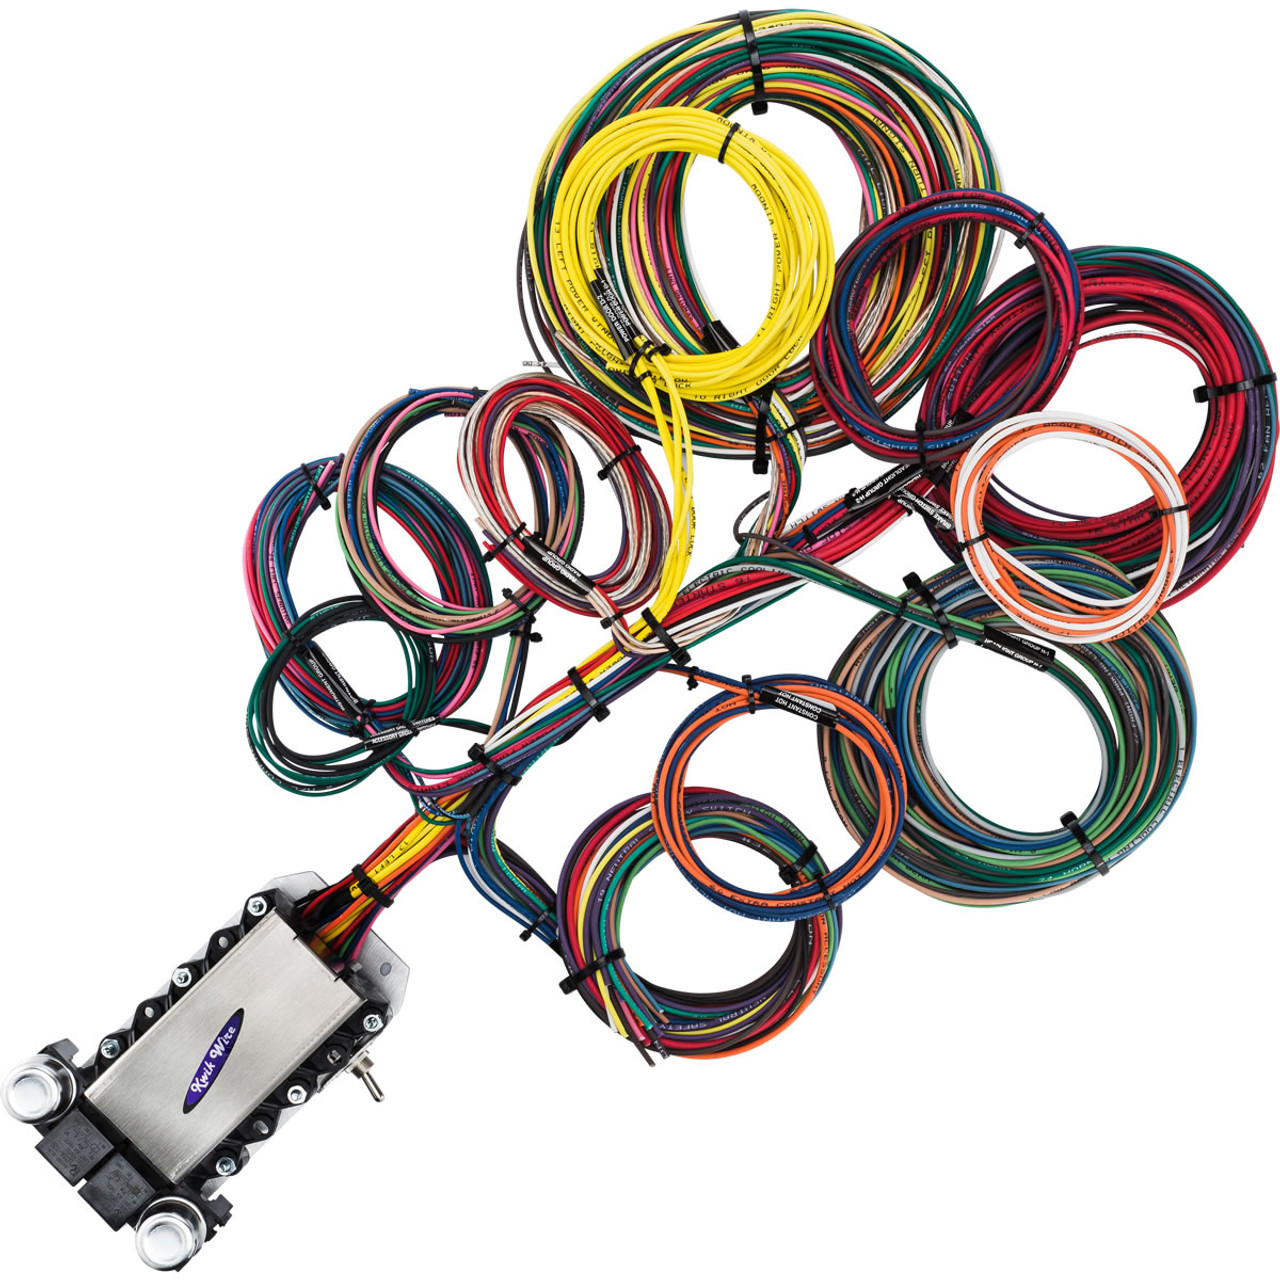 hight resolution of 22 circuit wire harness kwikwire com electrify your ride amc wiring harness straps